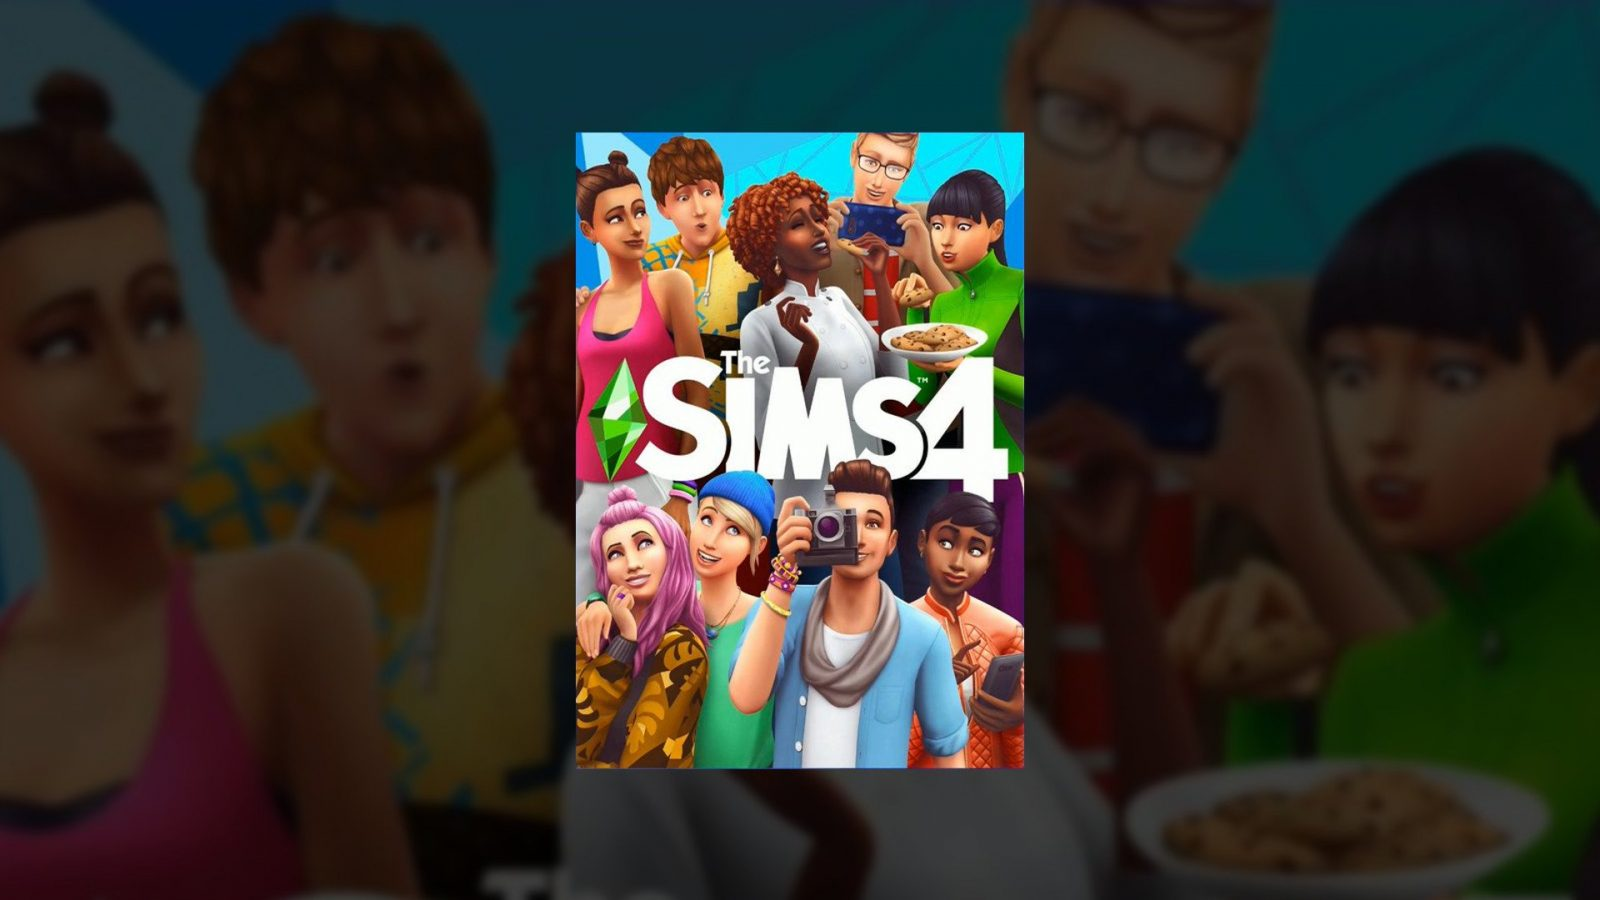 The Sims 4 Rebrand Bringing New Game Cover, Personality Quiz, and More!